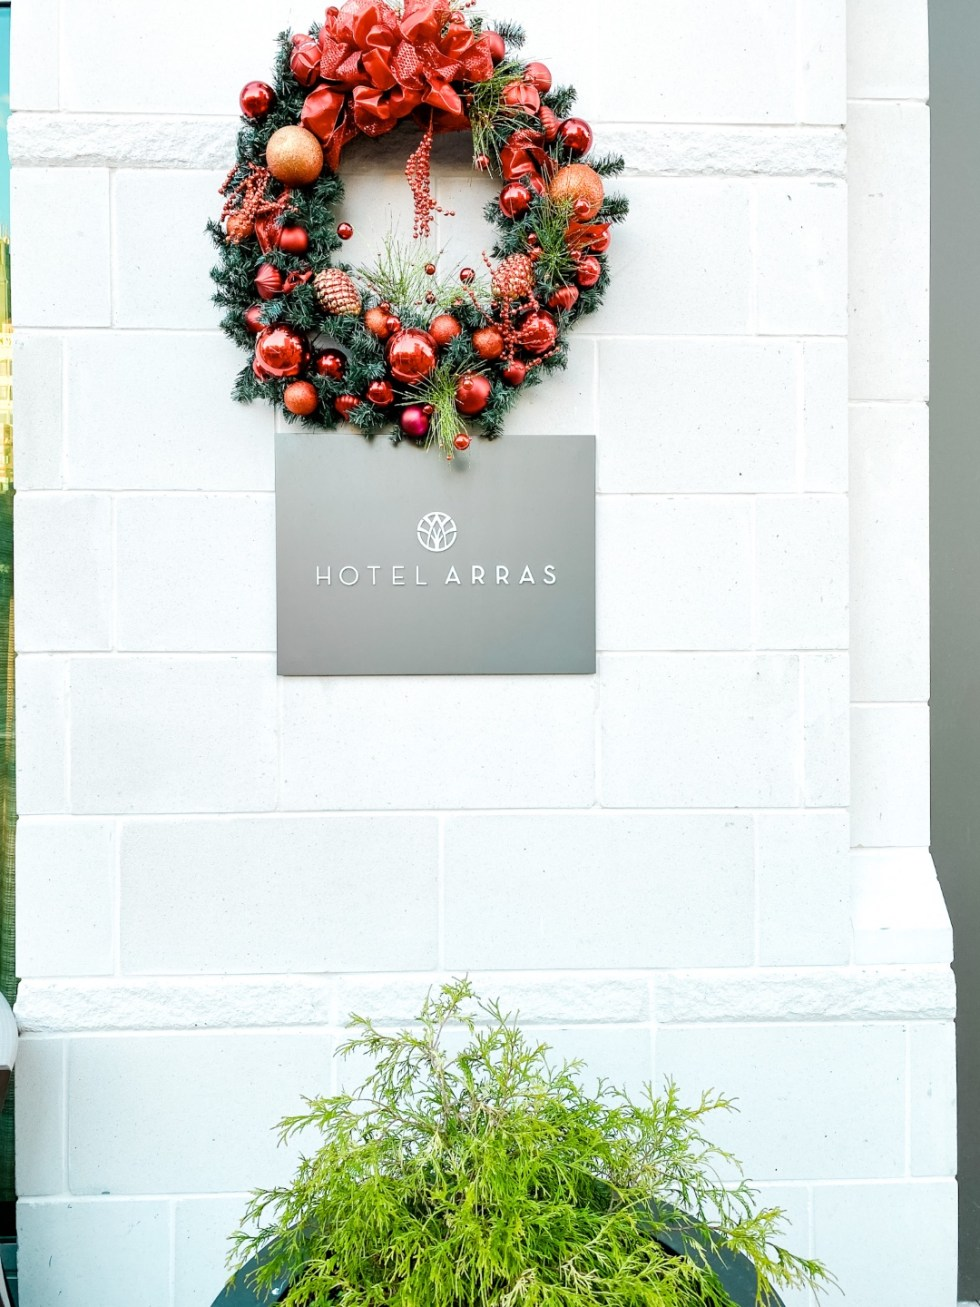 Christmas in Asheville: a Weekend Getaway During the Holidays - I'm Fixin' To - @imfixintoblog |Christmas in Asheville NC by popular NC lifestyle blog, I'm Fixin' To: image of Hotel Arras.